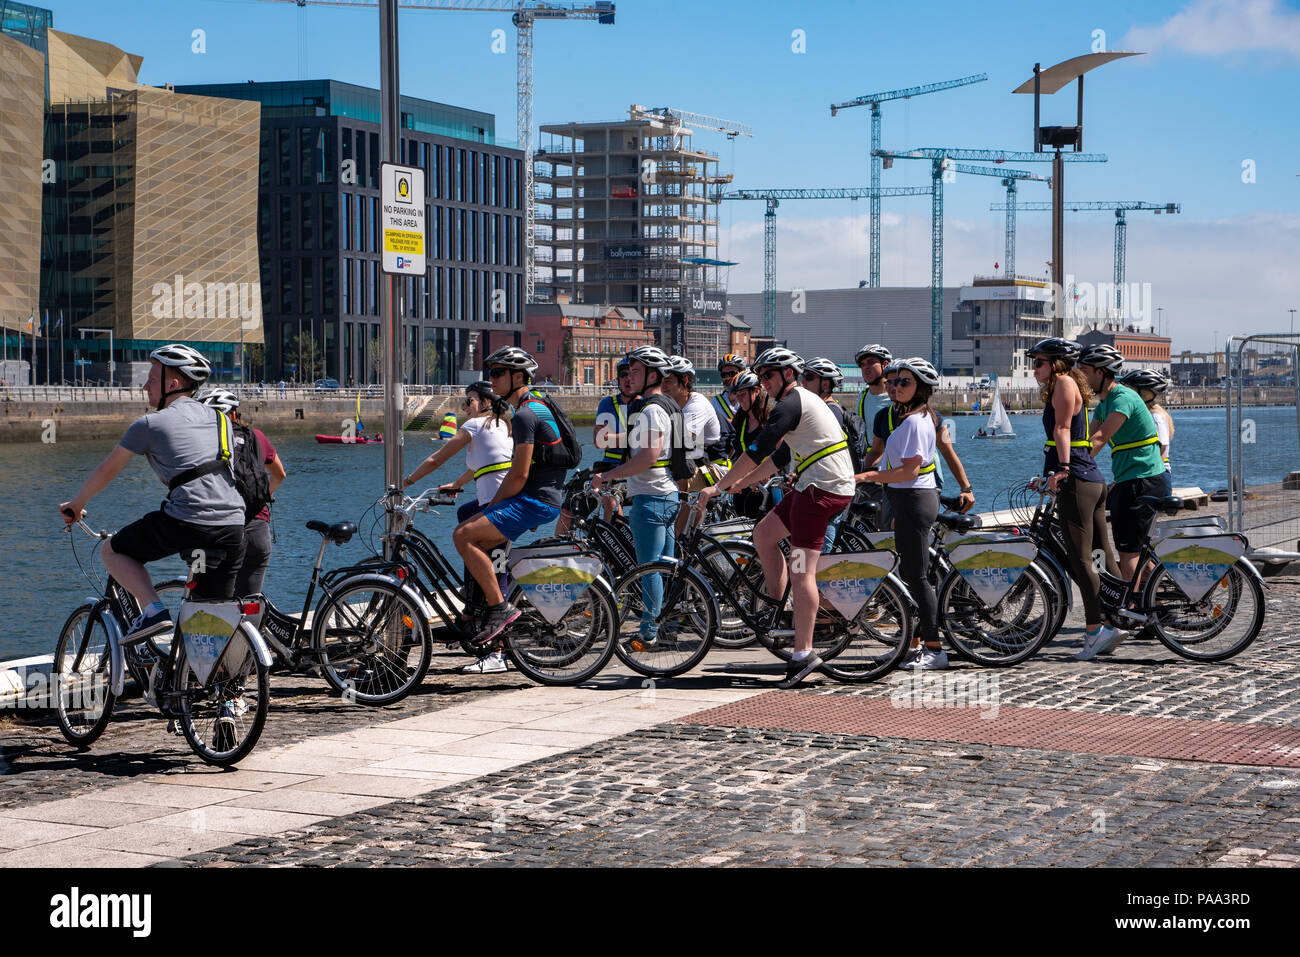 A group of tourists on bicycles is looking over the River Liffey in Dublin, Ireland. - Stock Image